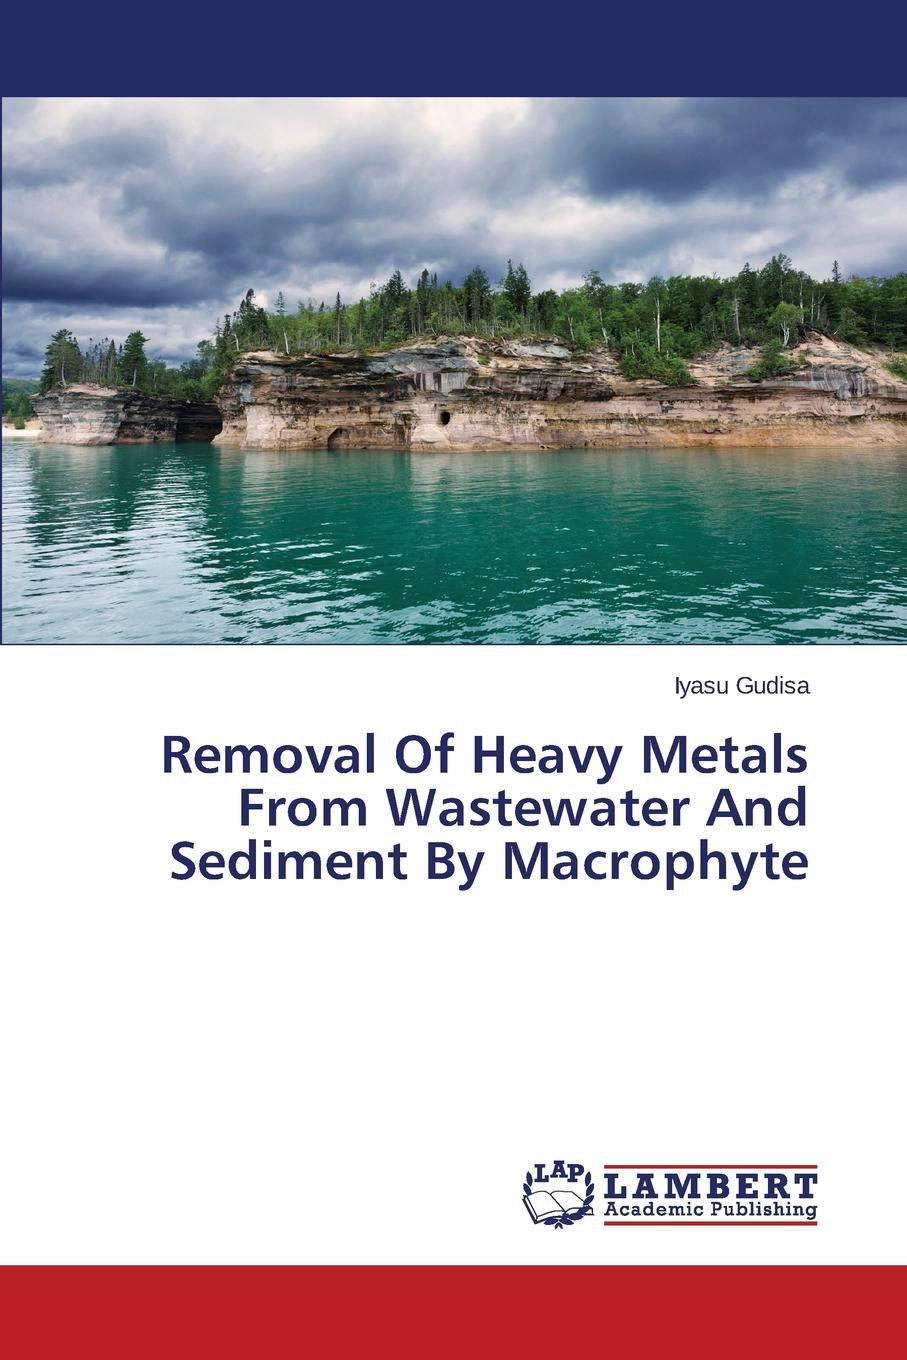 где купить Gudisa Iyasu Removal Of Heavy Metals From Wastewater And Sediment By Macrophyte дешево